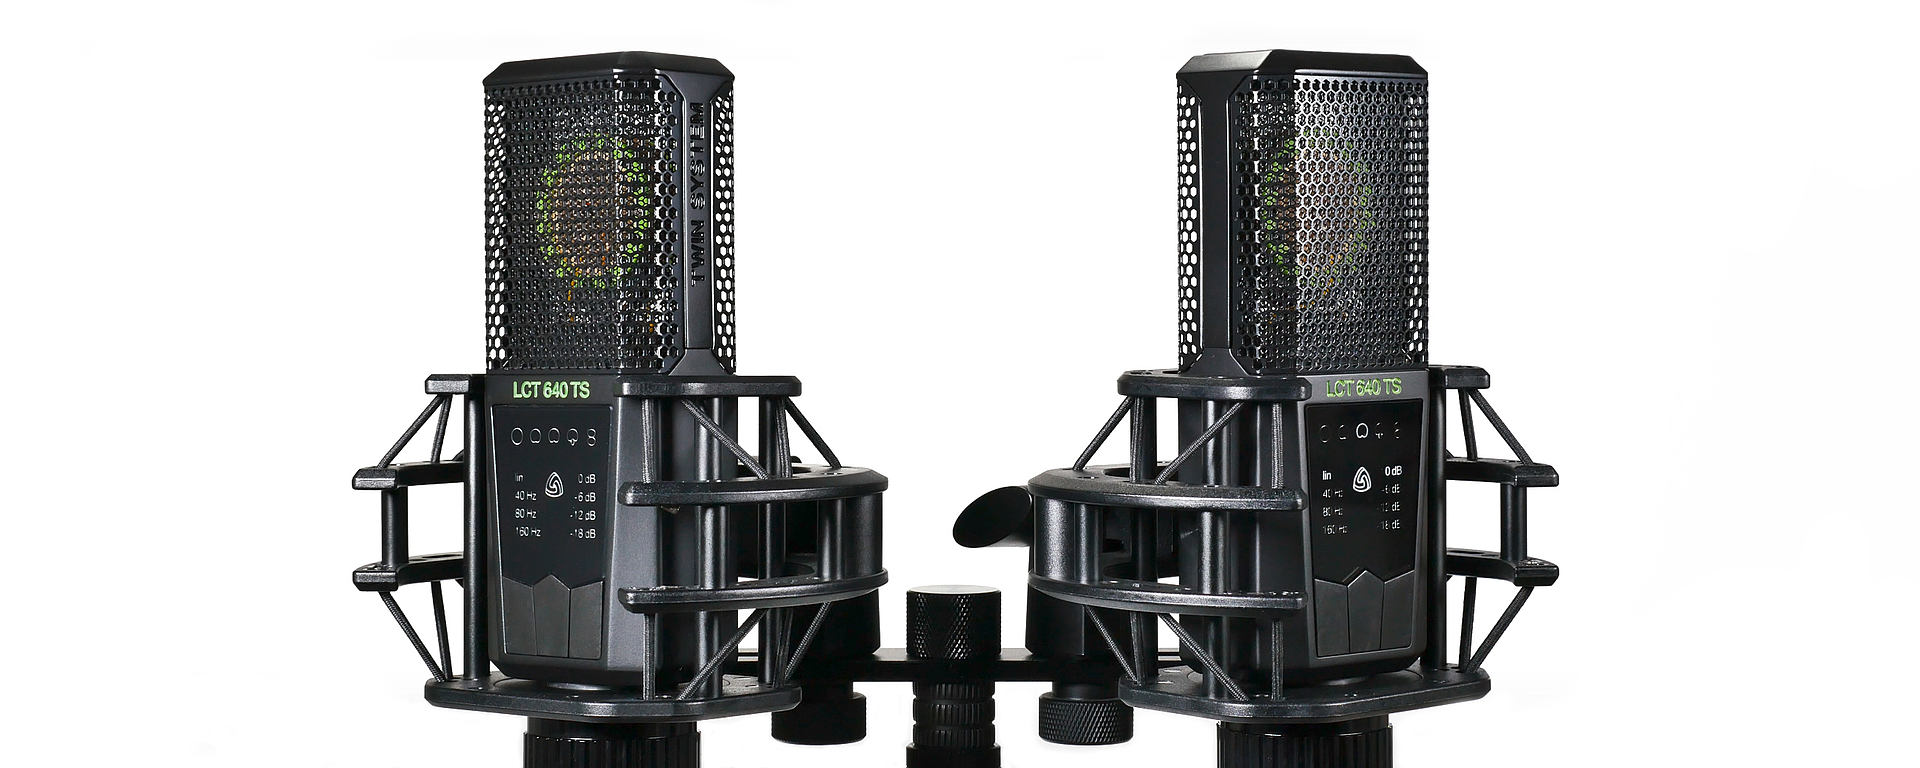 The LCT 640 TS is studio microphone of the year 2016